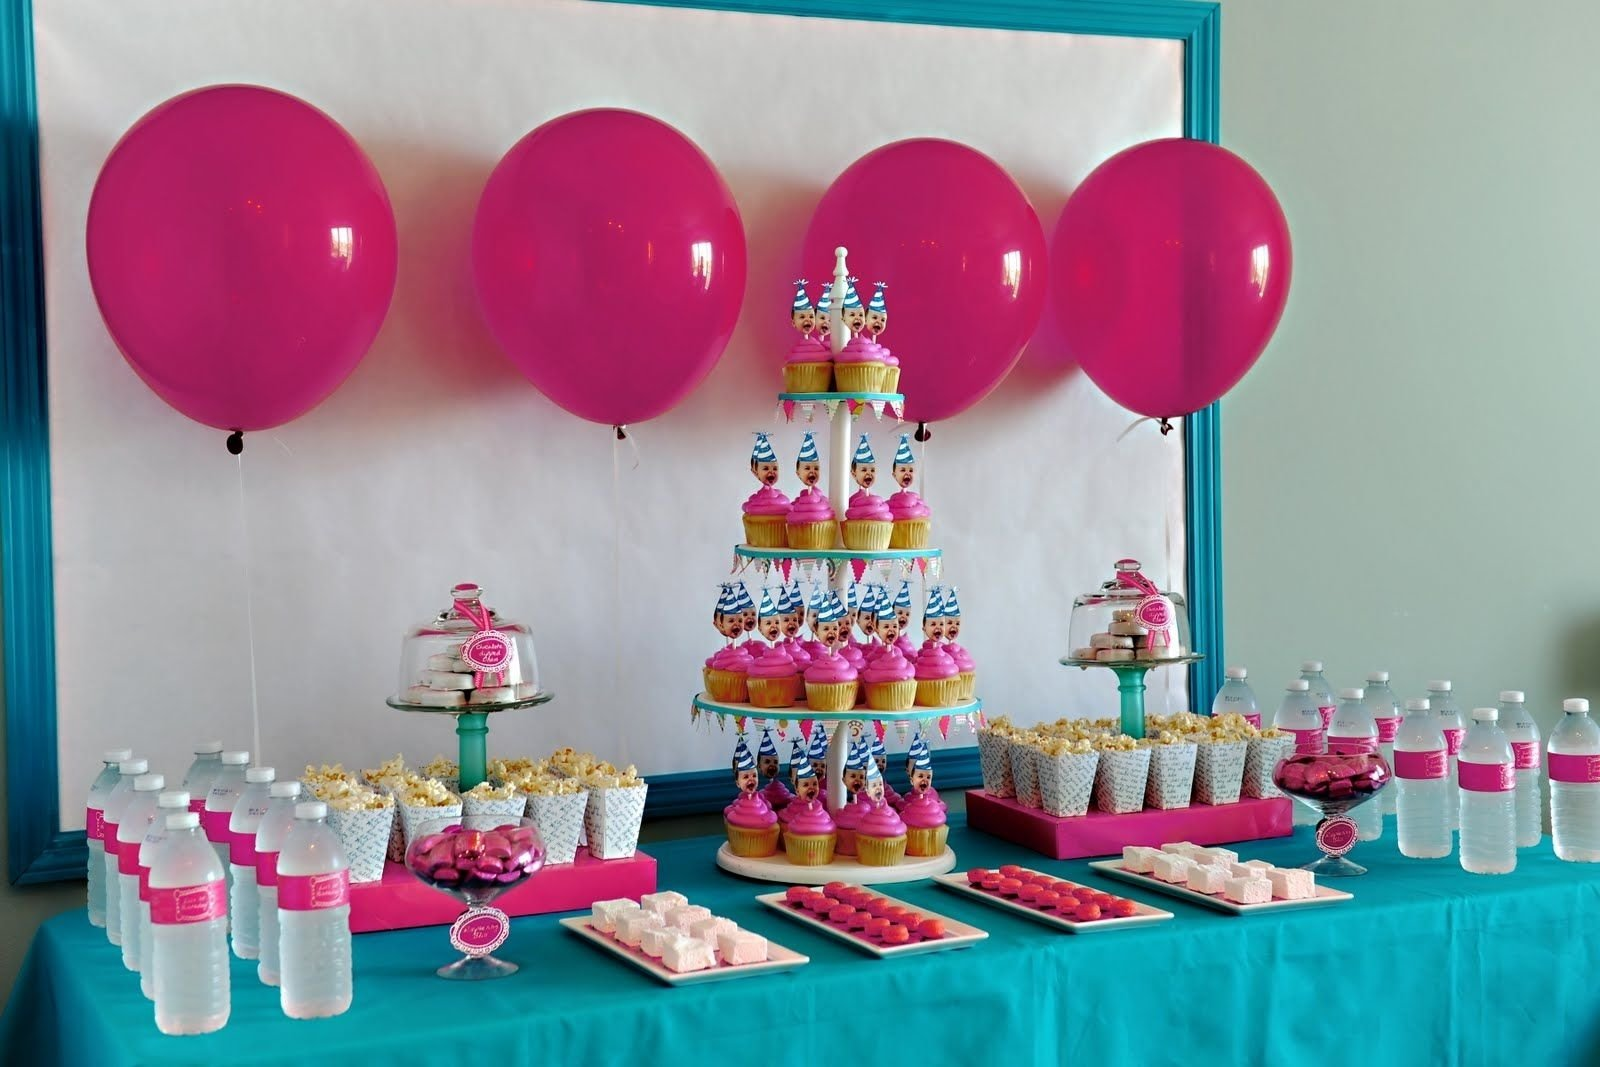 10 Famous One Year Birthday Party Ideas 2021